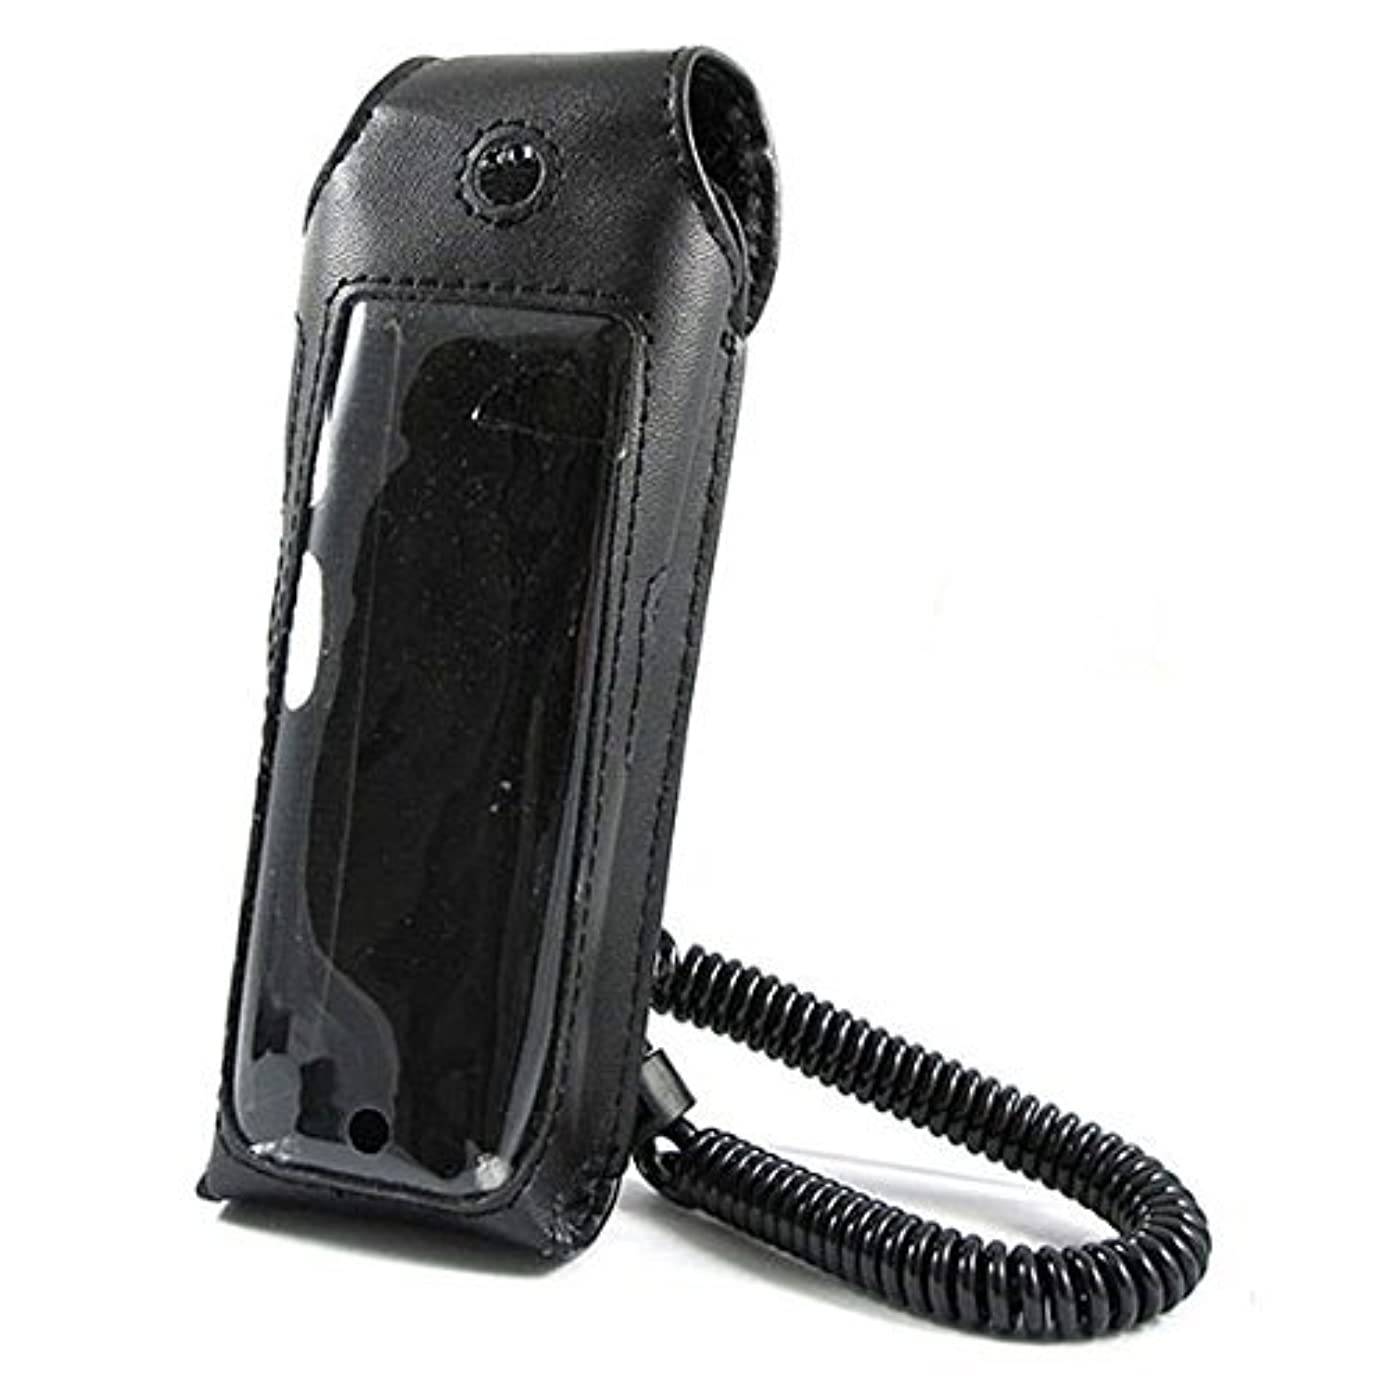 Artisan Power Polycom SpectraLink 8030 Black Phone Holster with Keypad Cover: WTO410